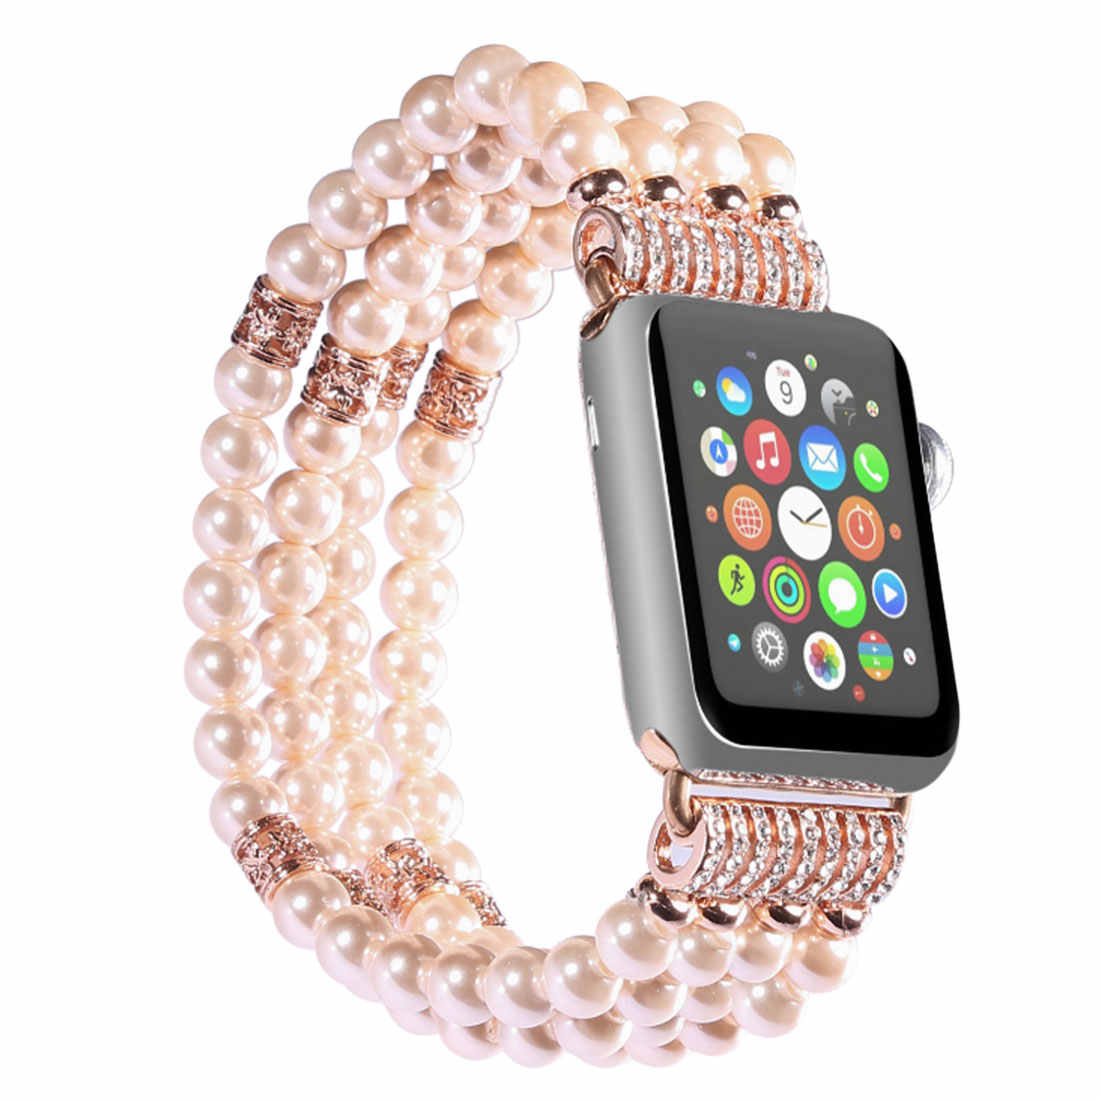 Fashion Watch Band Handmade Elastic Stretch Pearl Natural Stone Imitation pearl bracelet watchband